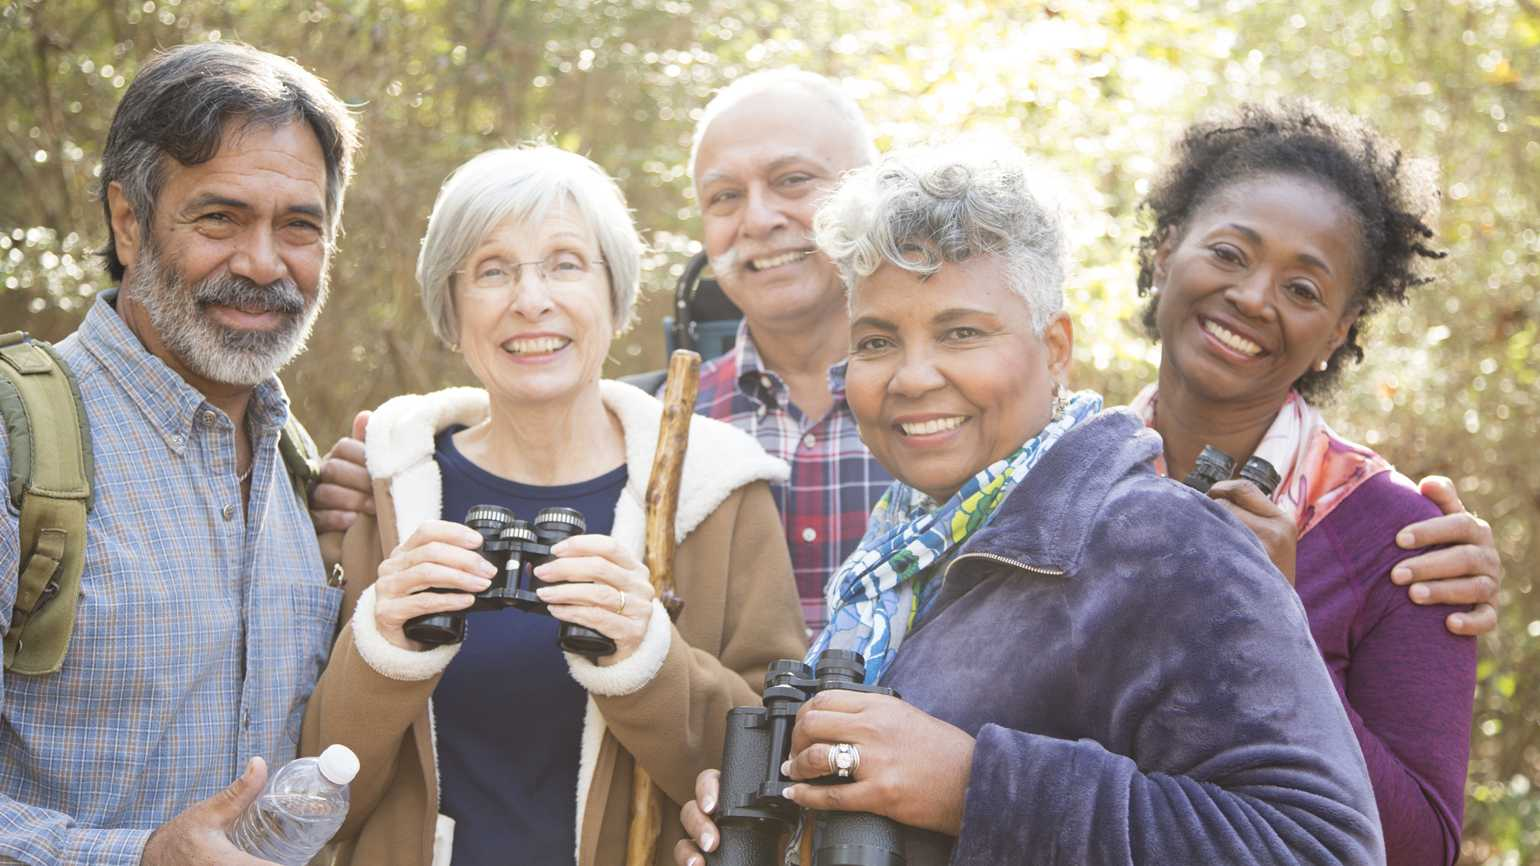 A group of diverse senior friends hiking in the woods.